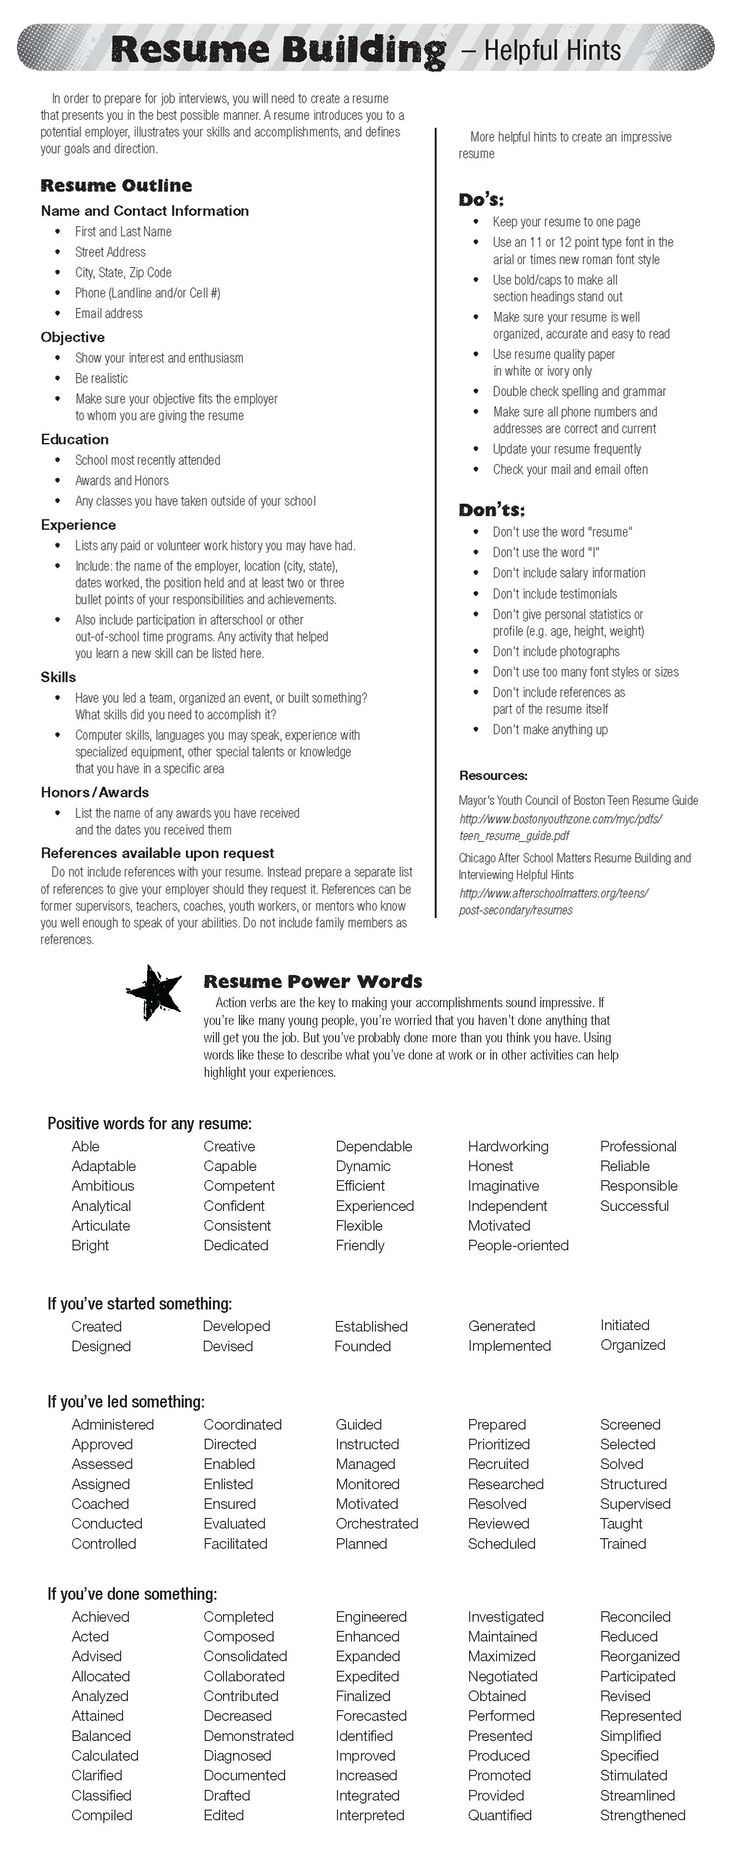 Opposenewapstandardsus  Marvelous  Ideas About Resume On Pinterest  Cv Format Resume  With Lovable Check Out Todays Resume Building Tips Resume Resumepowerwords With Archaic Resume Database Software Also Skills Section Resume Example In Addition Clerical Resumes And High School Resume For College Template As Well As How To Do My Resume Additionally Courtesy Clerk Resume From Pinterestcom With Opposenewapstandardsus  Lovable  Ideas About Resume On Pinterest  Cv Format Resume  With Archaic Check Out Todays Resume Building Tips Resume Resumepowerwords And Marvelous Resume Database Software Also Skills Section Resume Example In Addition Clerical Resumes From Pinterestcom